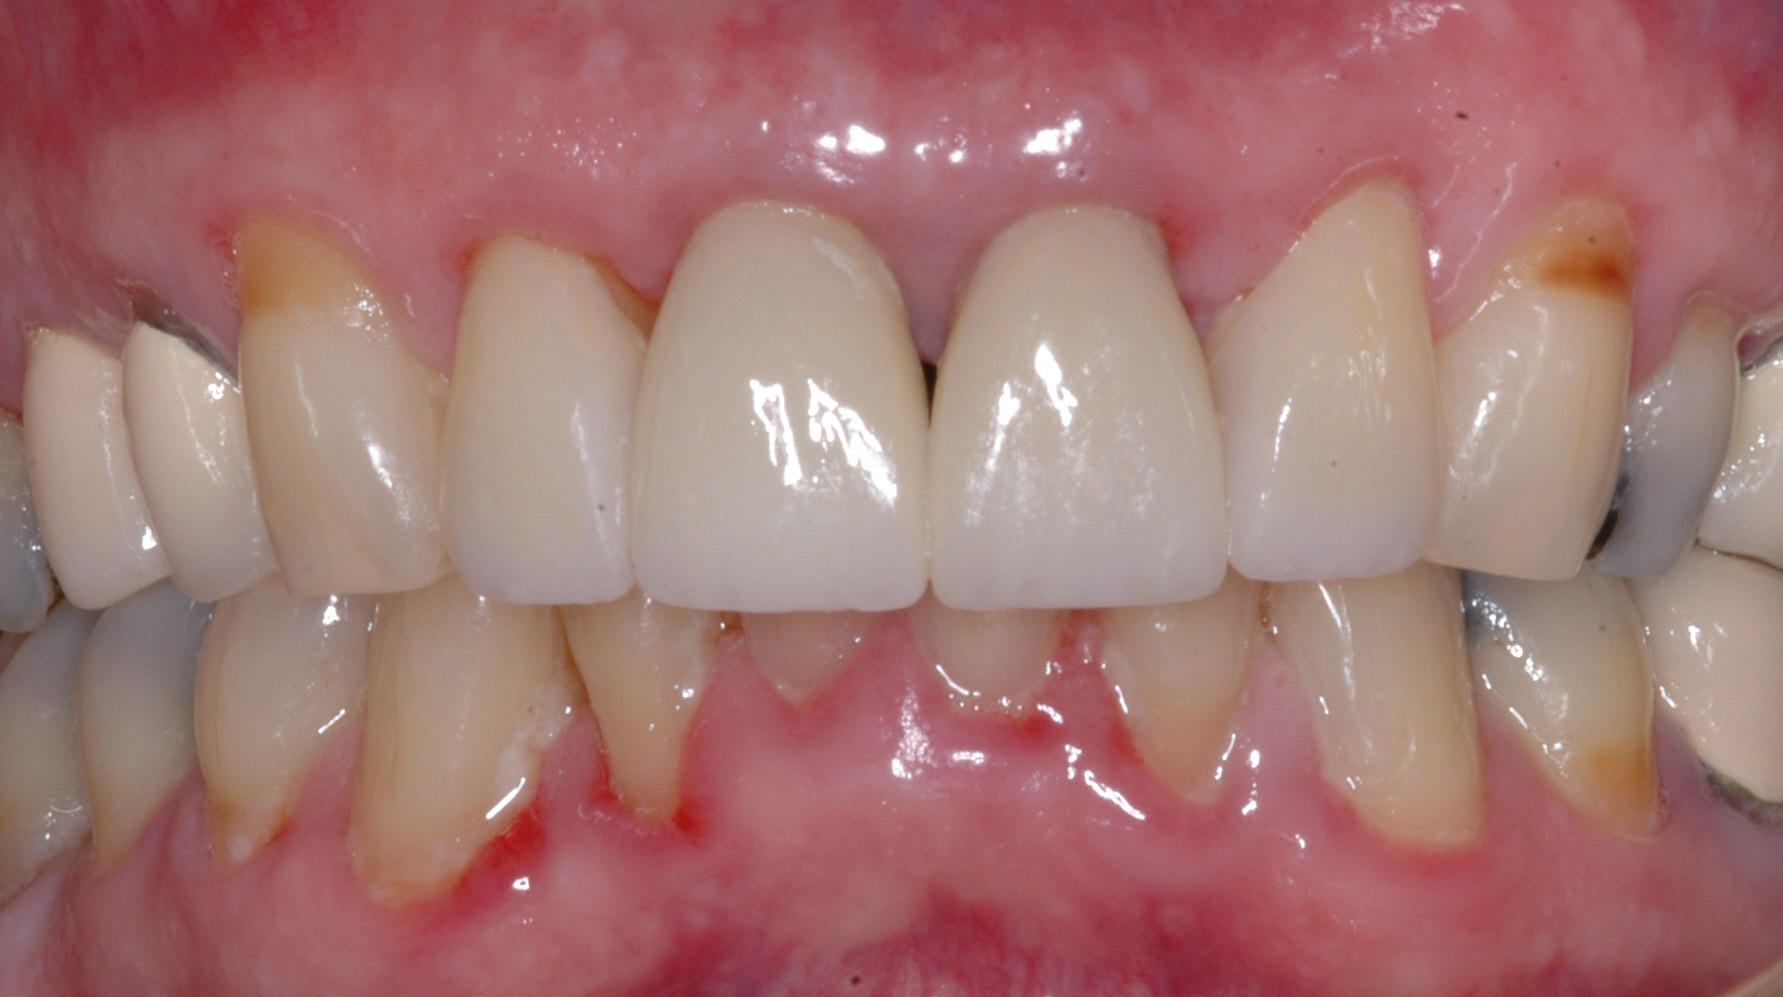 We fabricated crowns on the 4 upper incisors with proper contours, shade, and length. This improved the tissue health around the crownsgreatly improving hissmile